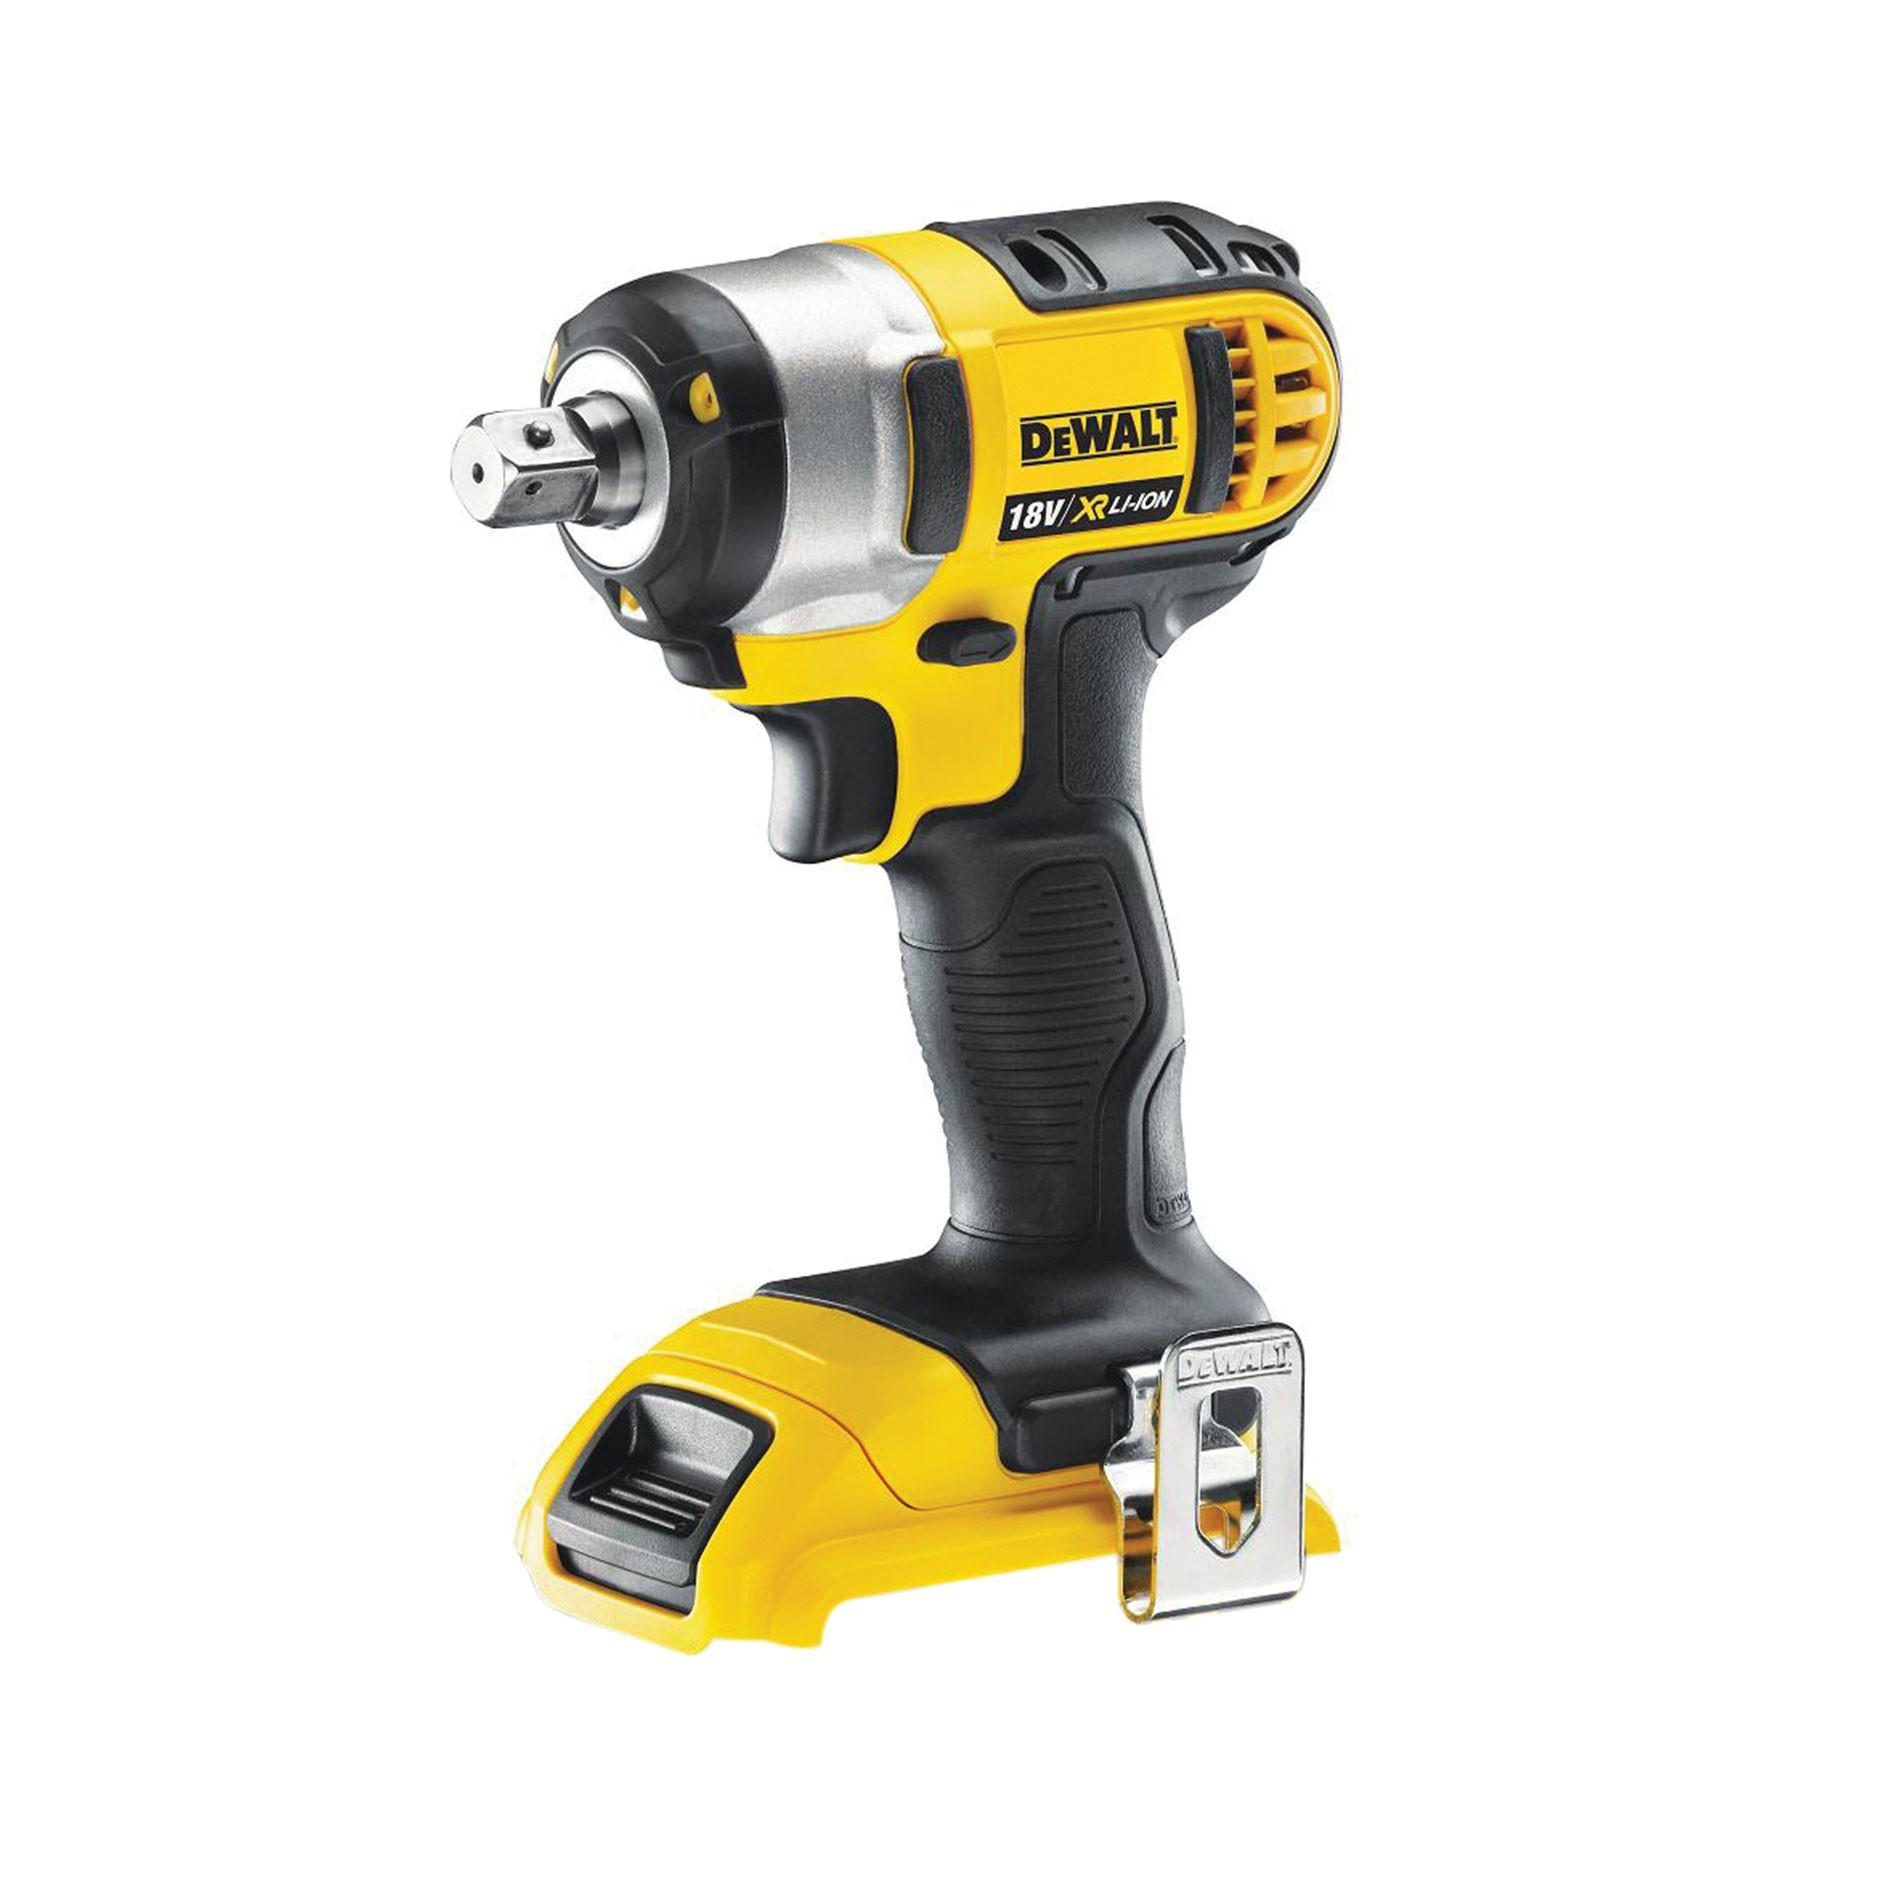 DeWalt DCF880N 18v XR Compact Impact Wrench Body Only | Powertool World